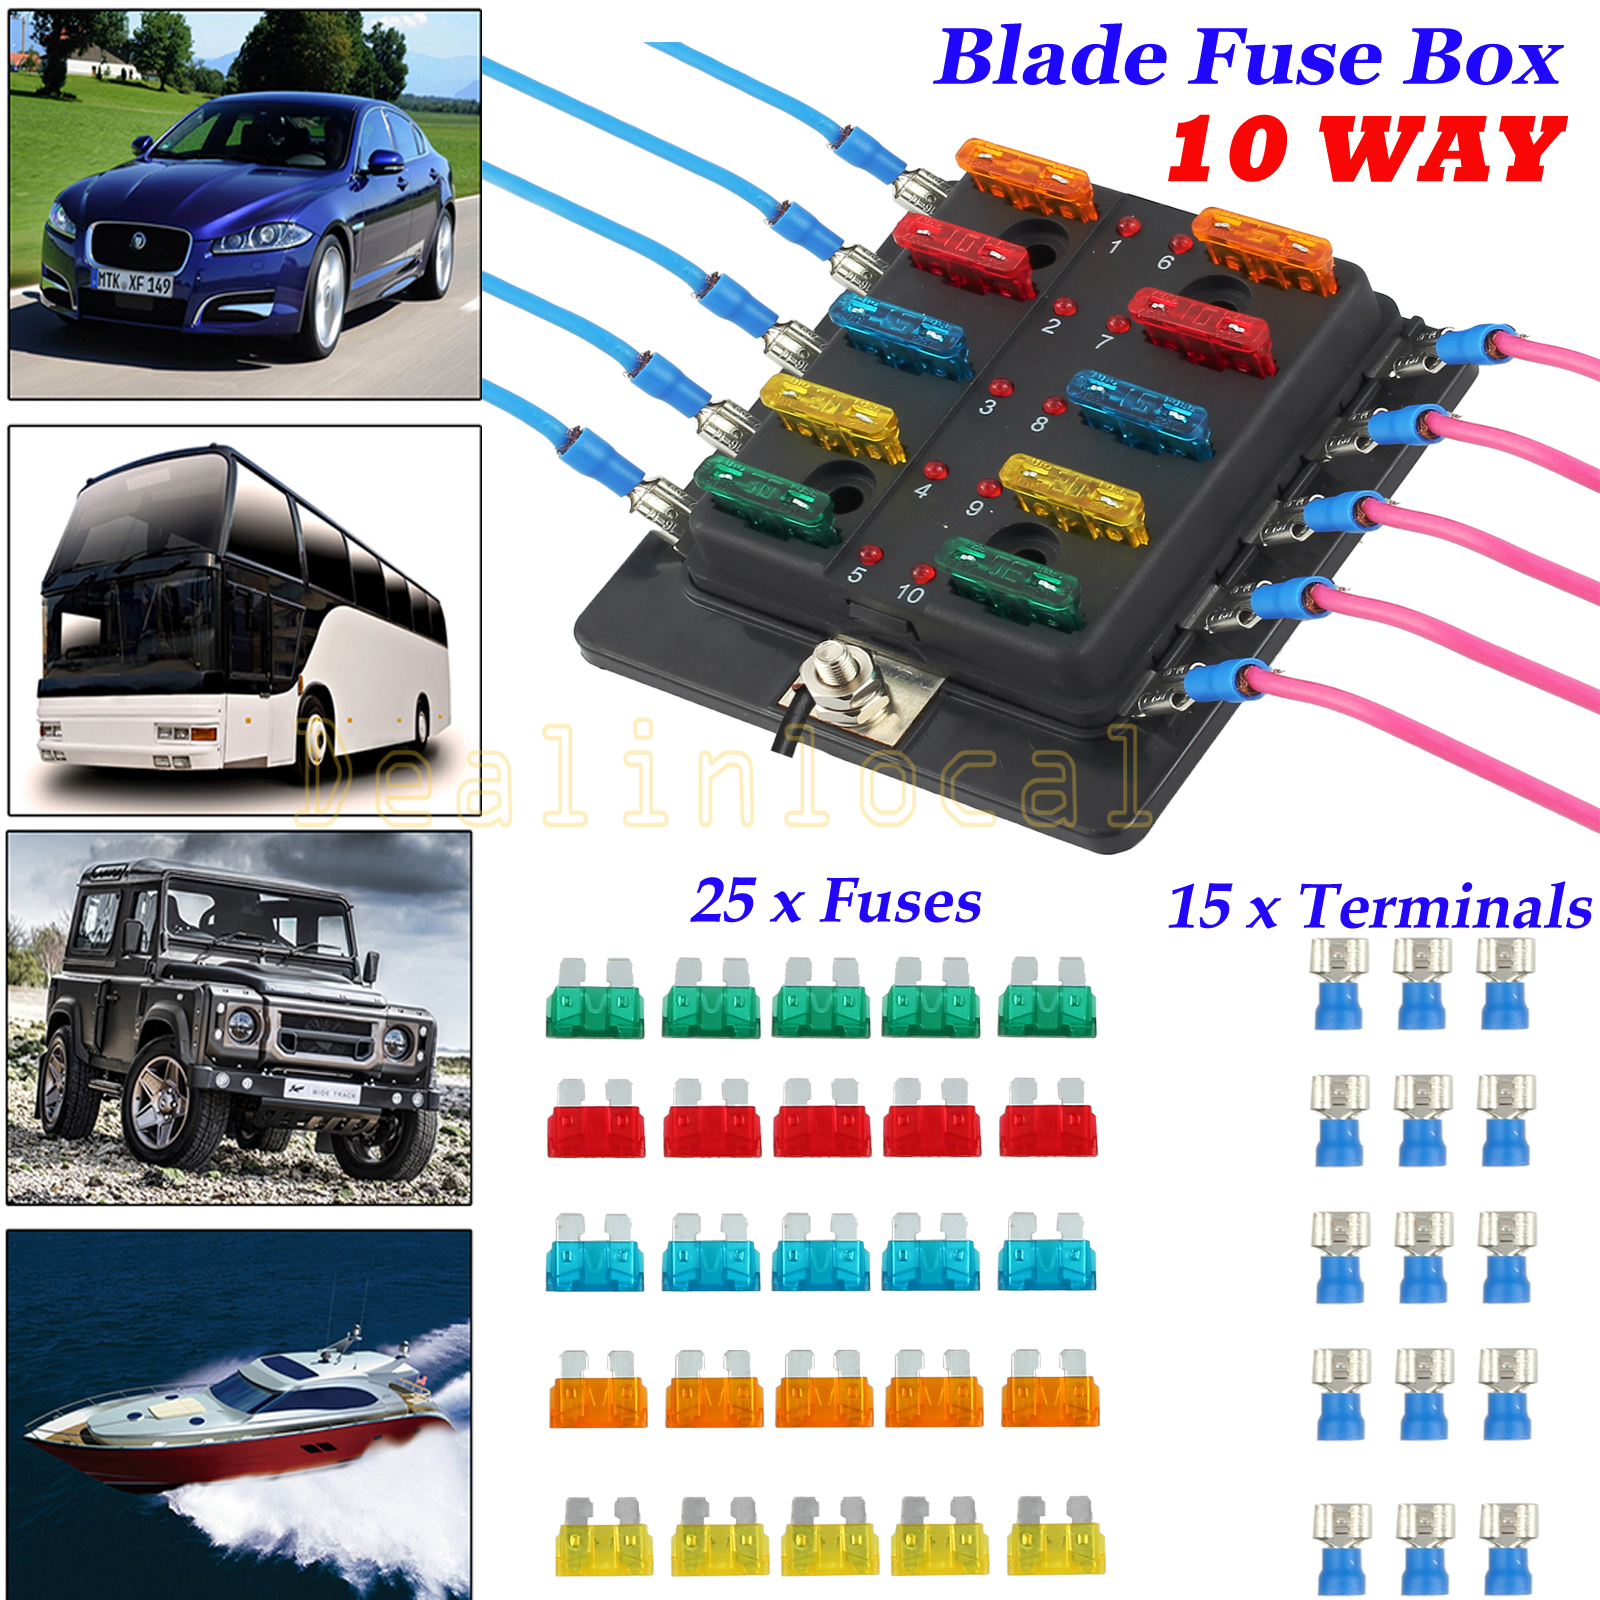 Fuse Box 12 Way Blade Fuses Holder Block with LED Indicator for Boat Van Car Truck Marine